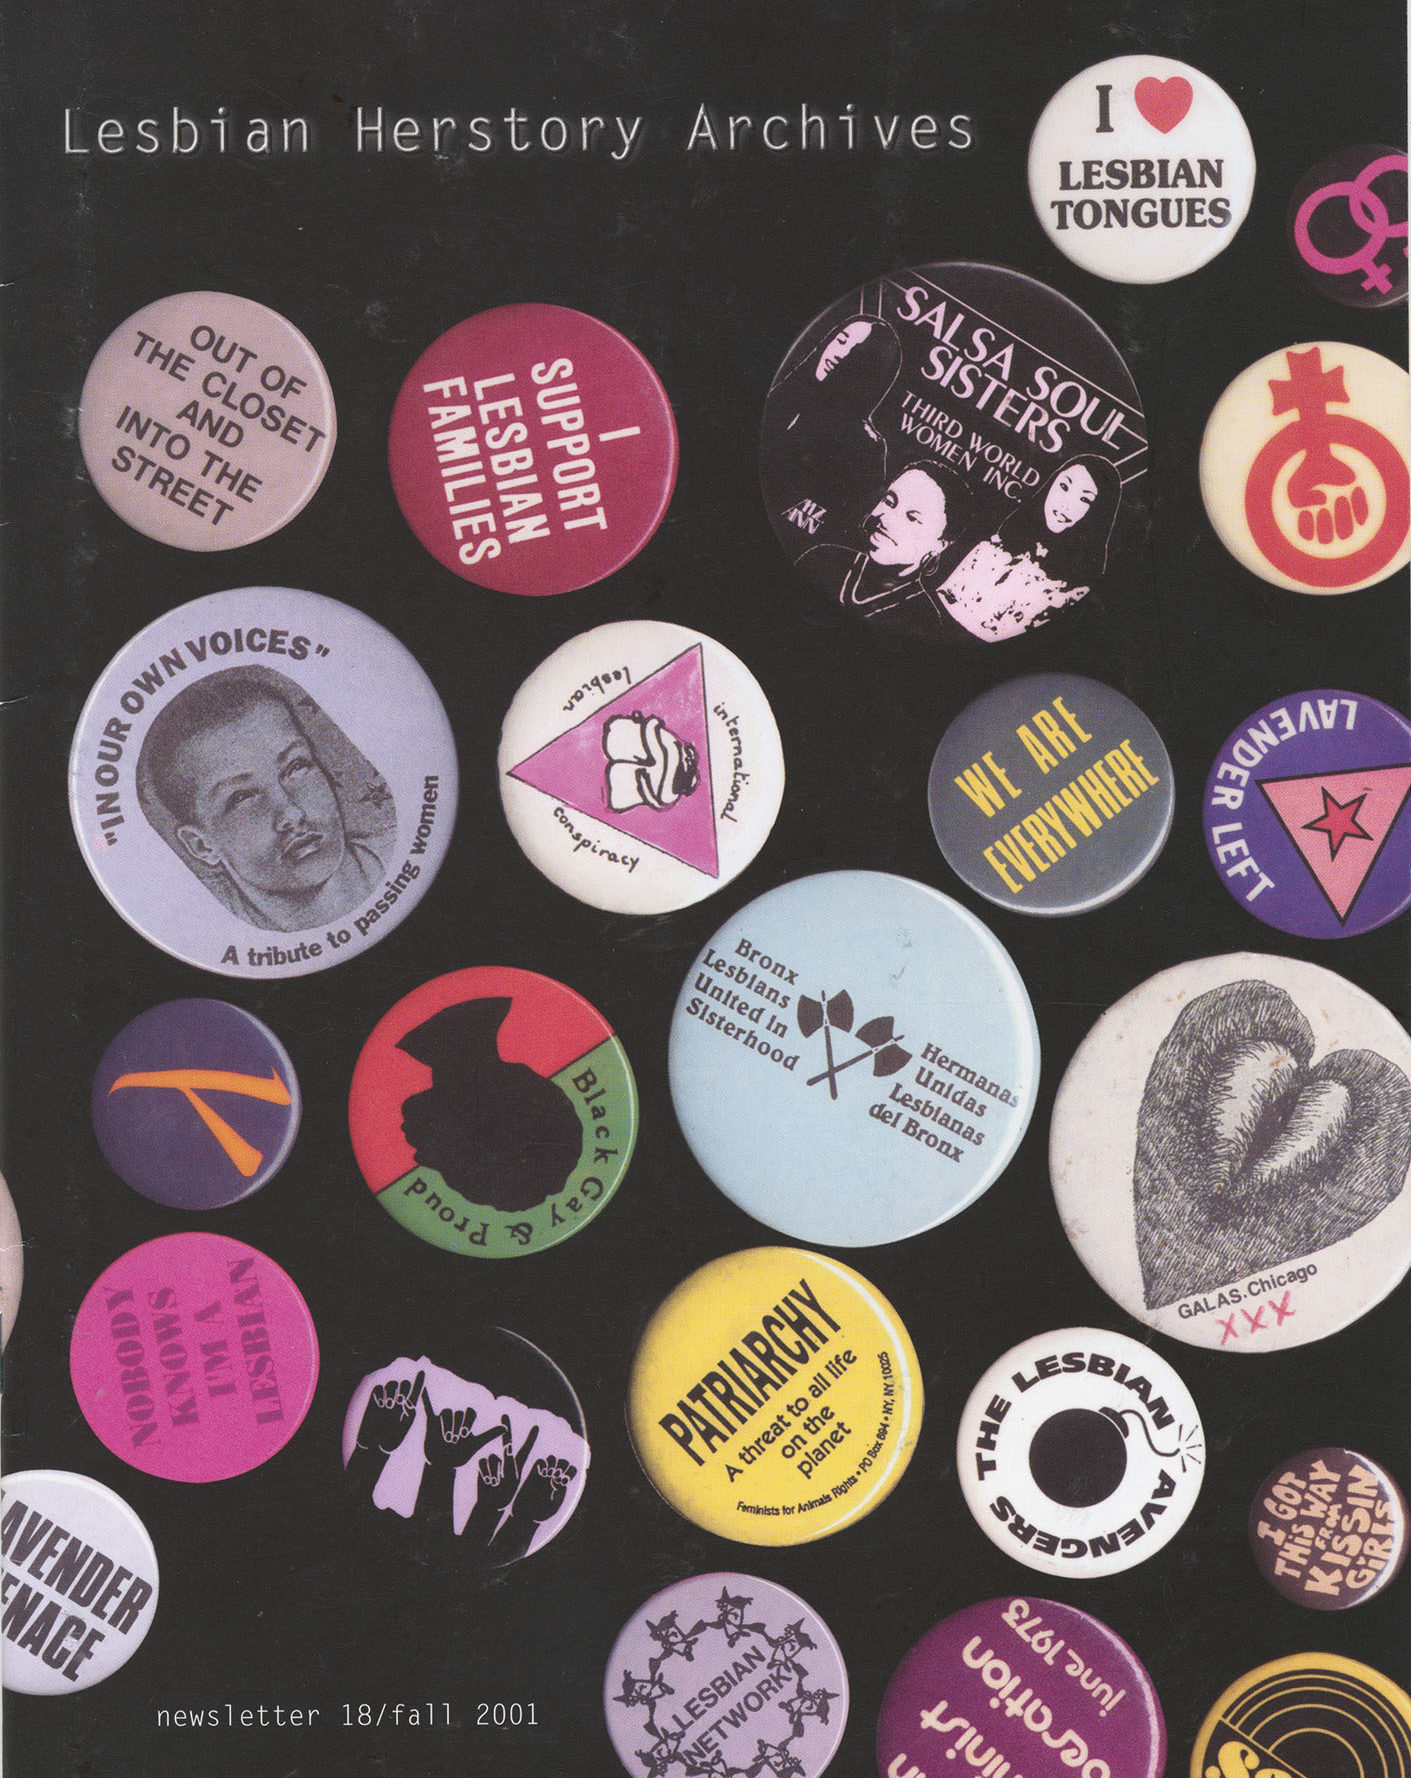 The cover of an LHA newsletter dated fall 2001 features a variety of Lesbian and Feminist themed pin-on buttons.